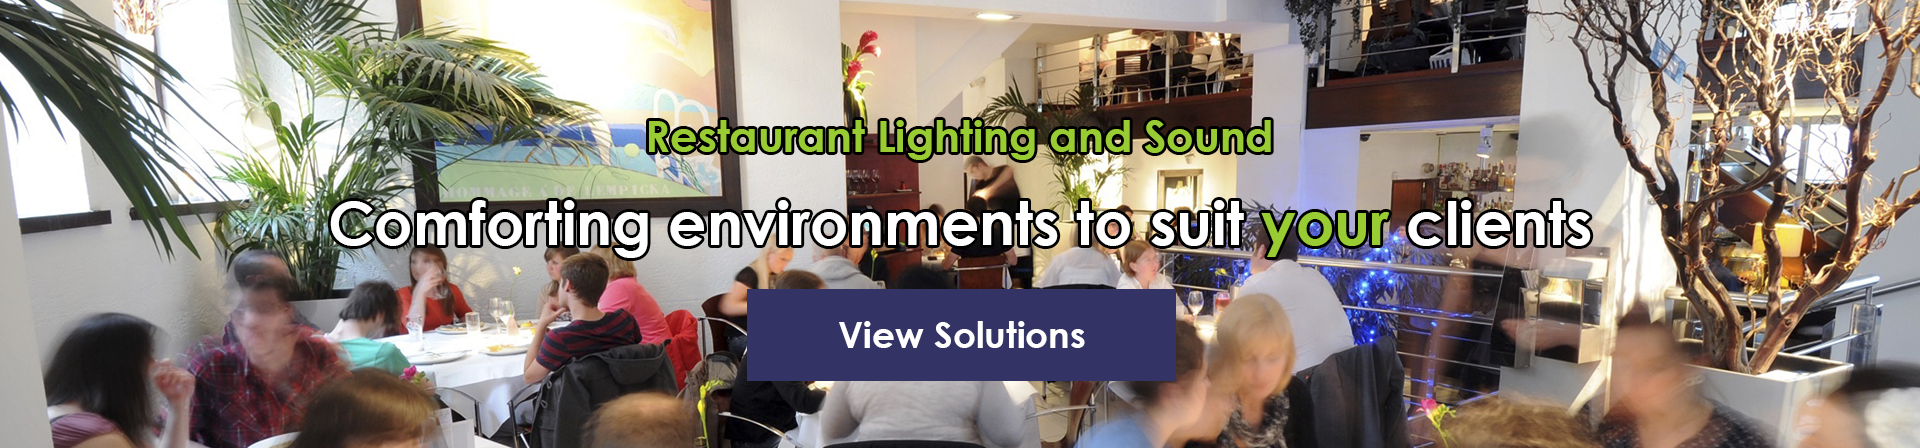 Restaurant Sound and Lighting